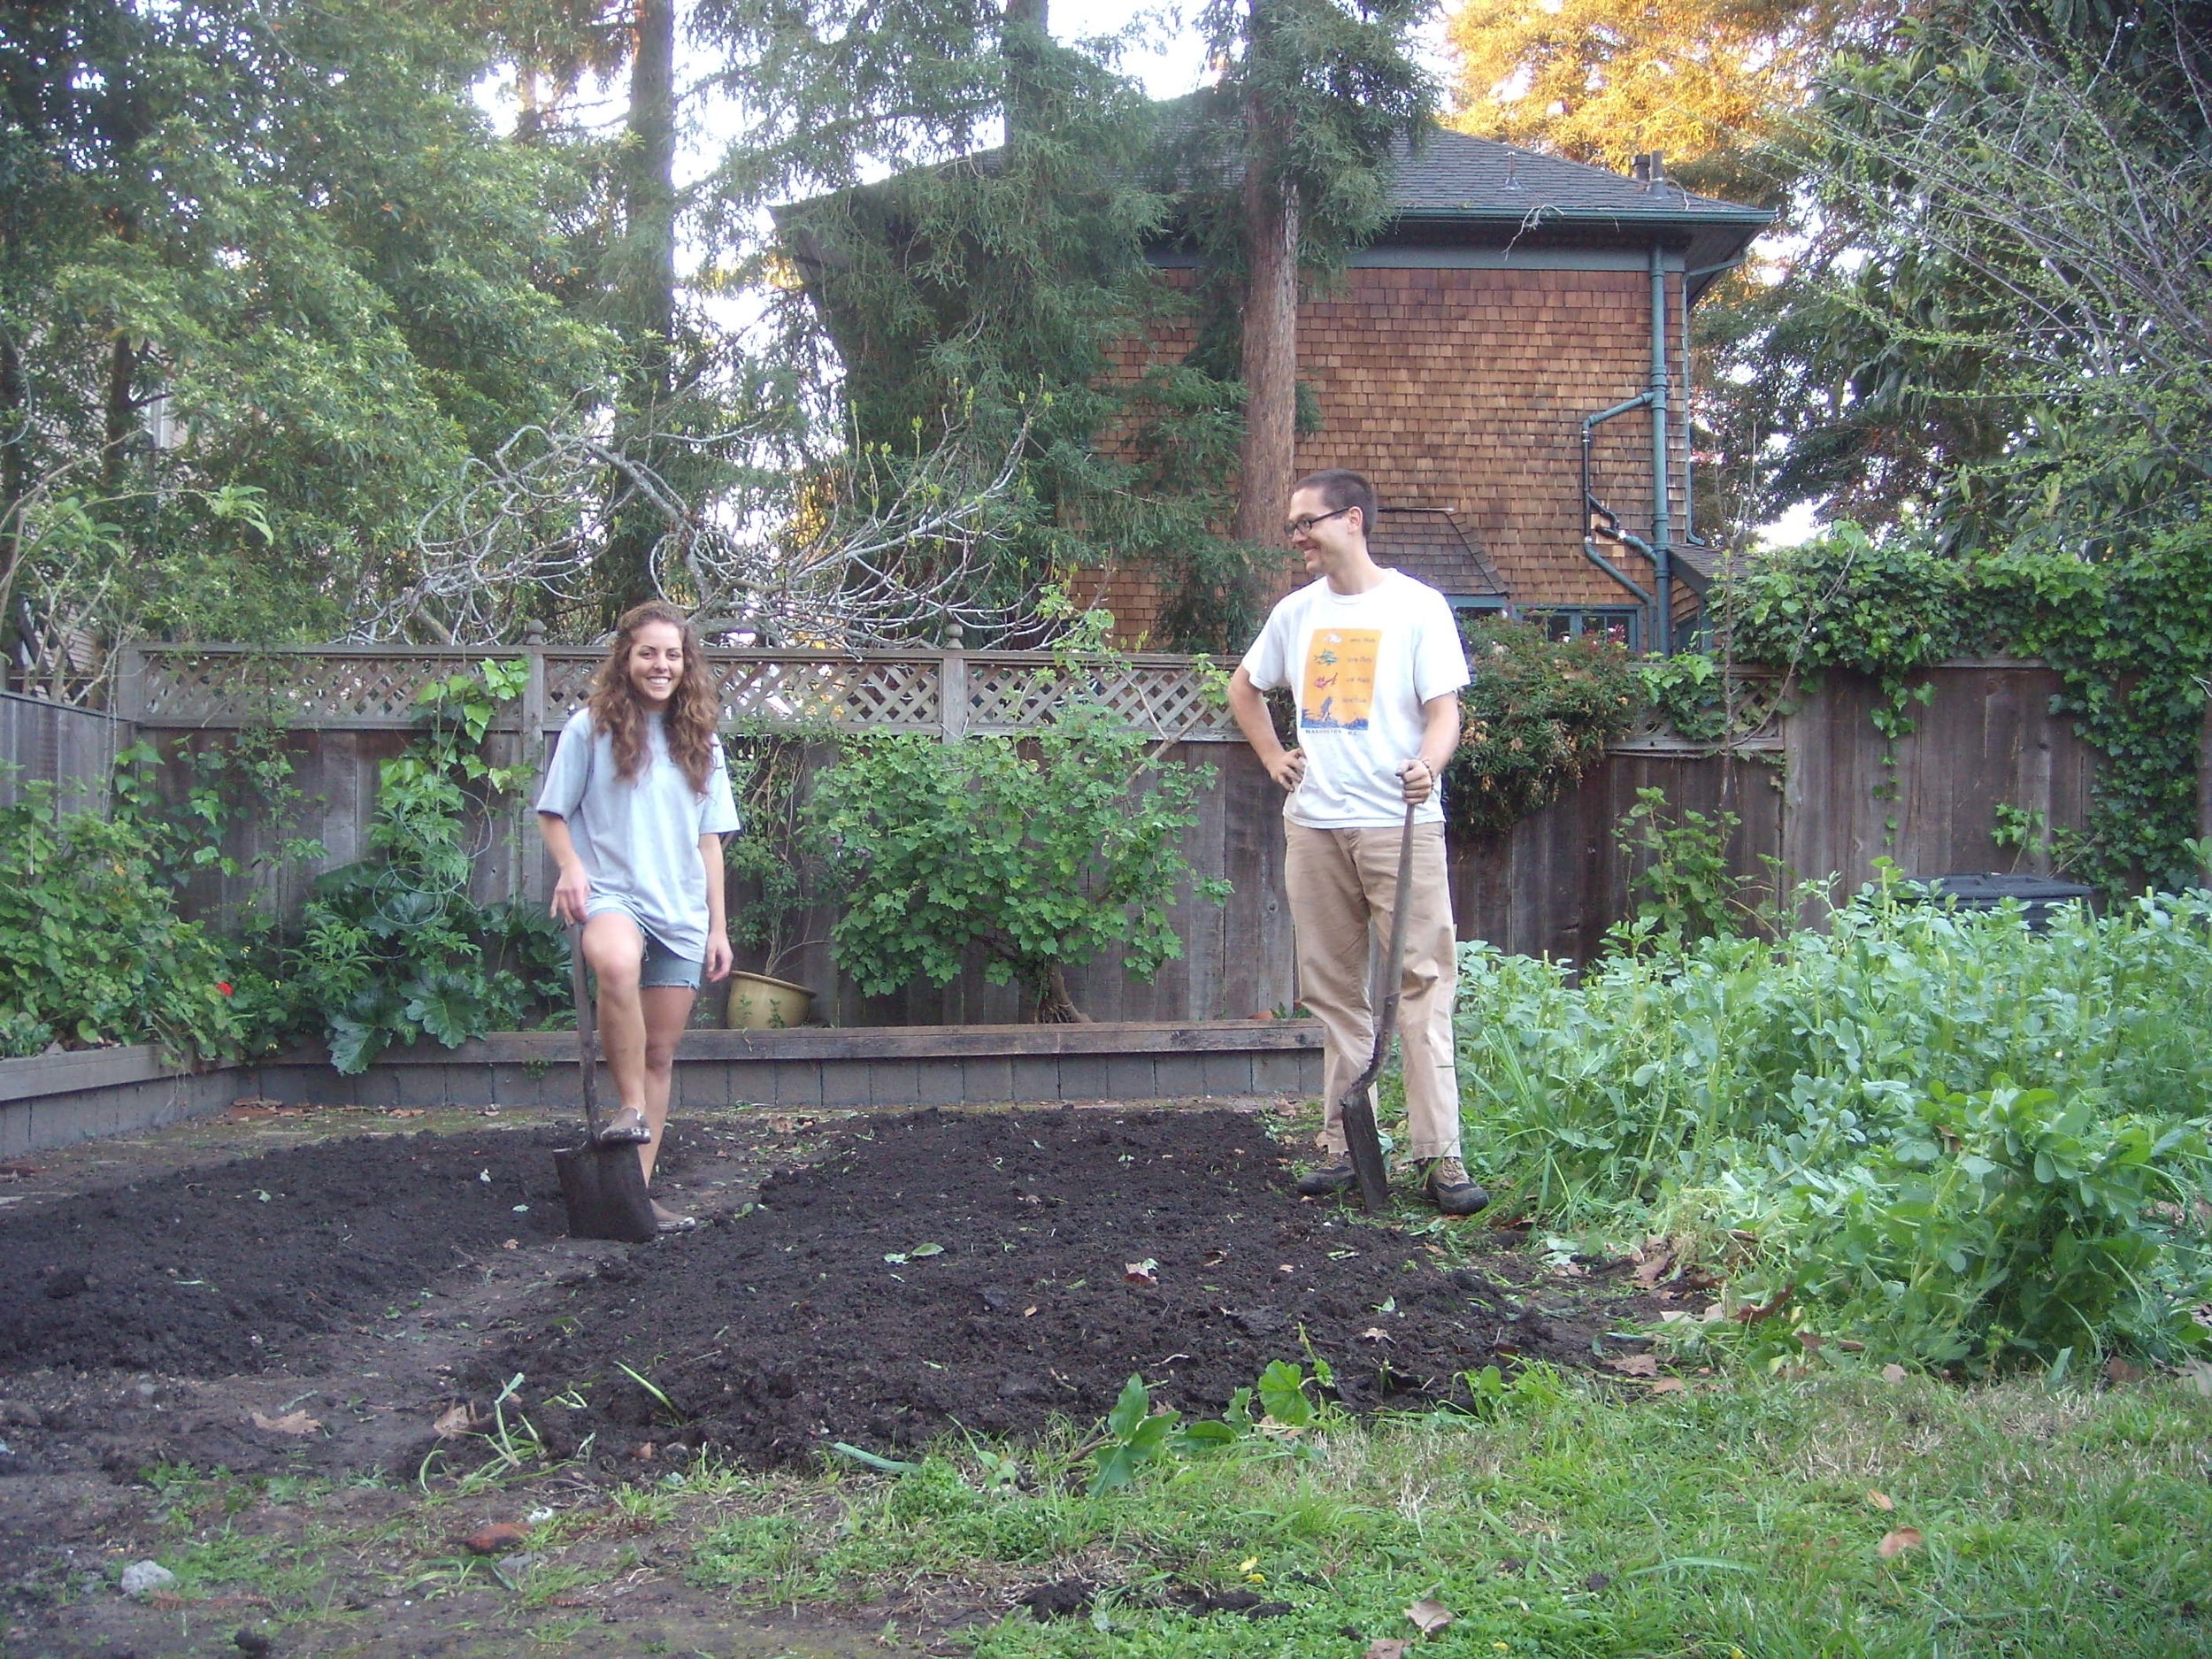 The Beginning - Carine and Robert met under a microscope in plant morphology course at UC Berkeley (Go Bears!). The first garden they planted together was in the backyard of Robert's house. They moved to the Capay Valley in 2015 to start Sun Tracker Farm.